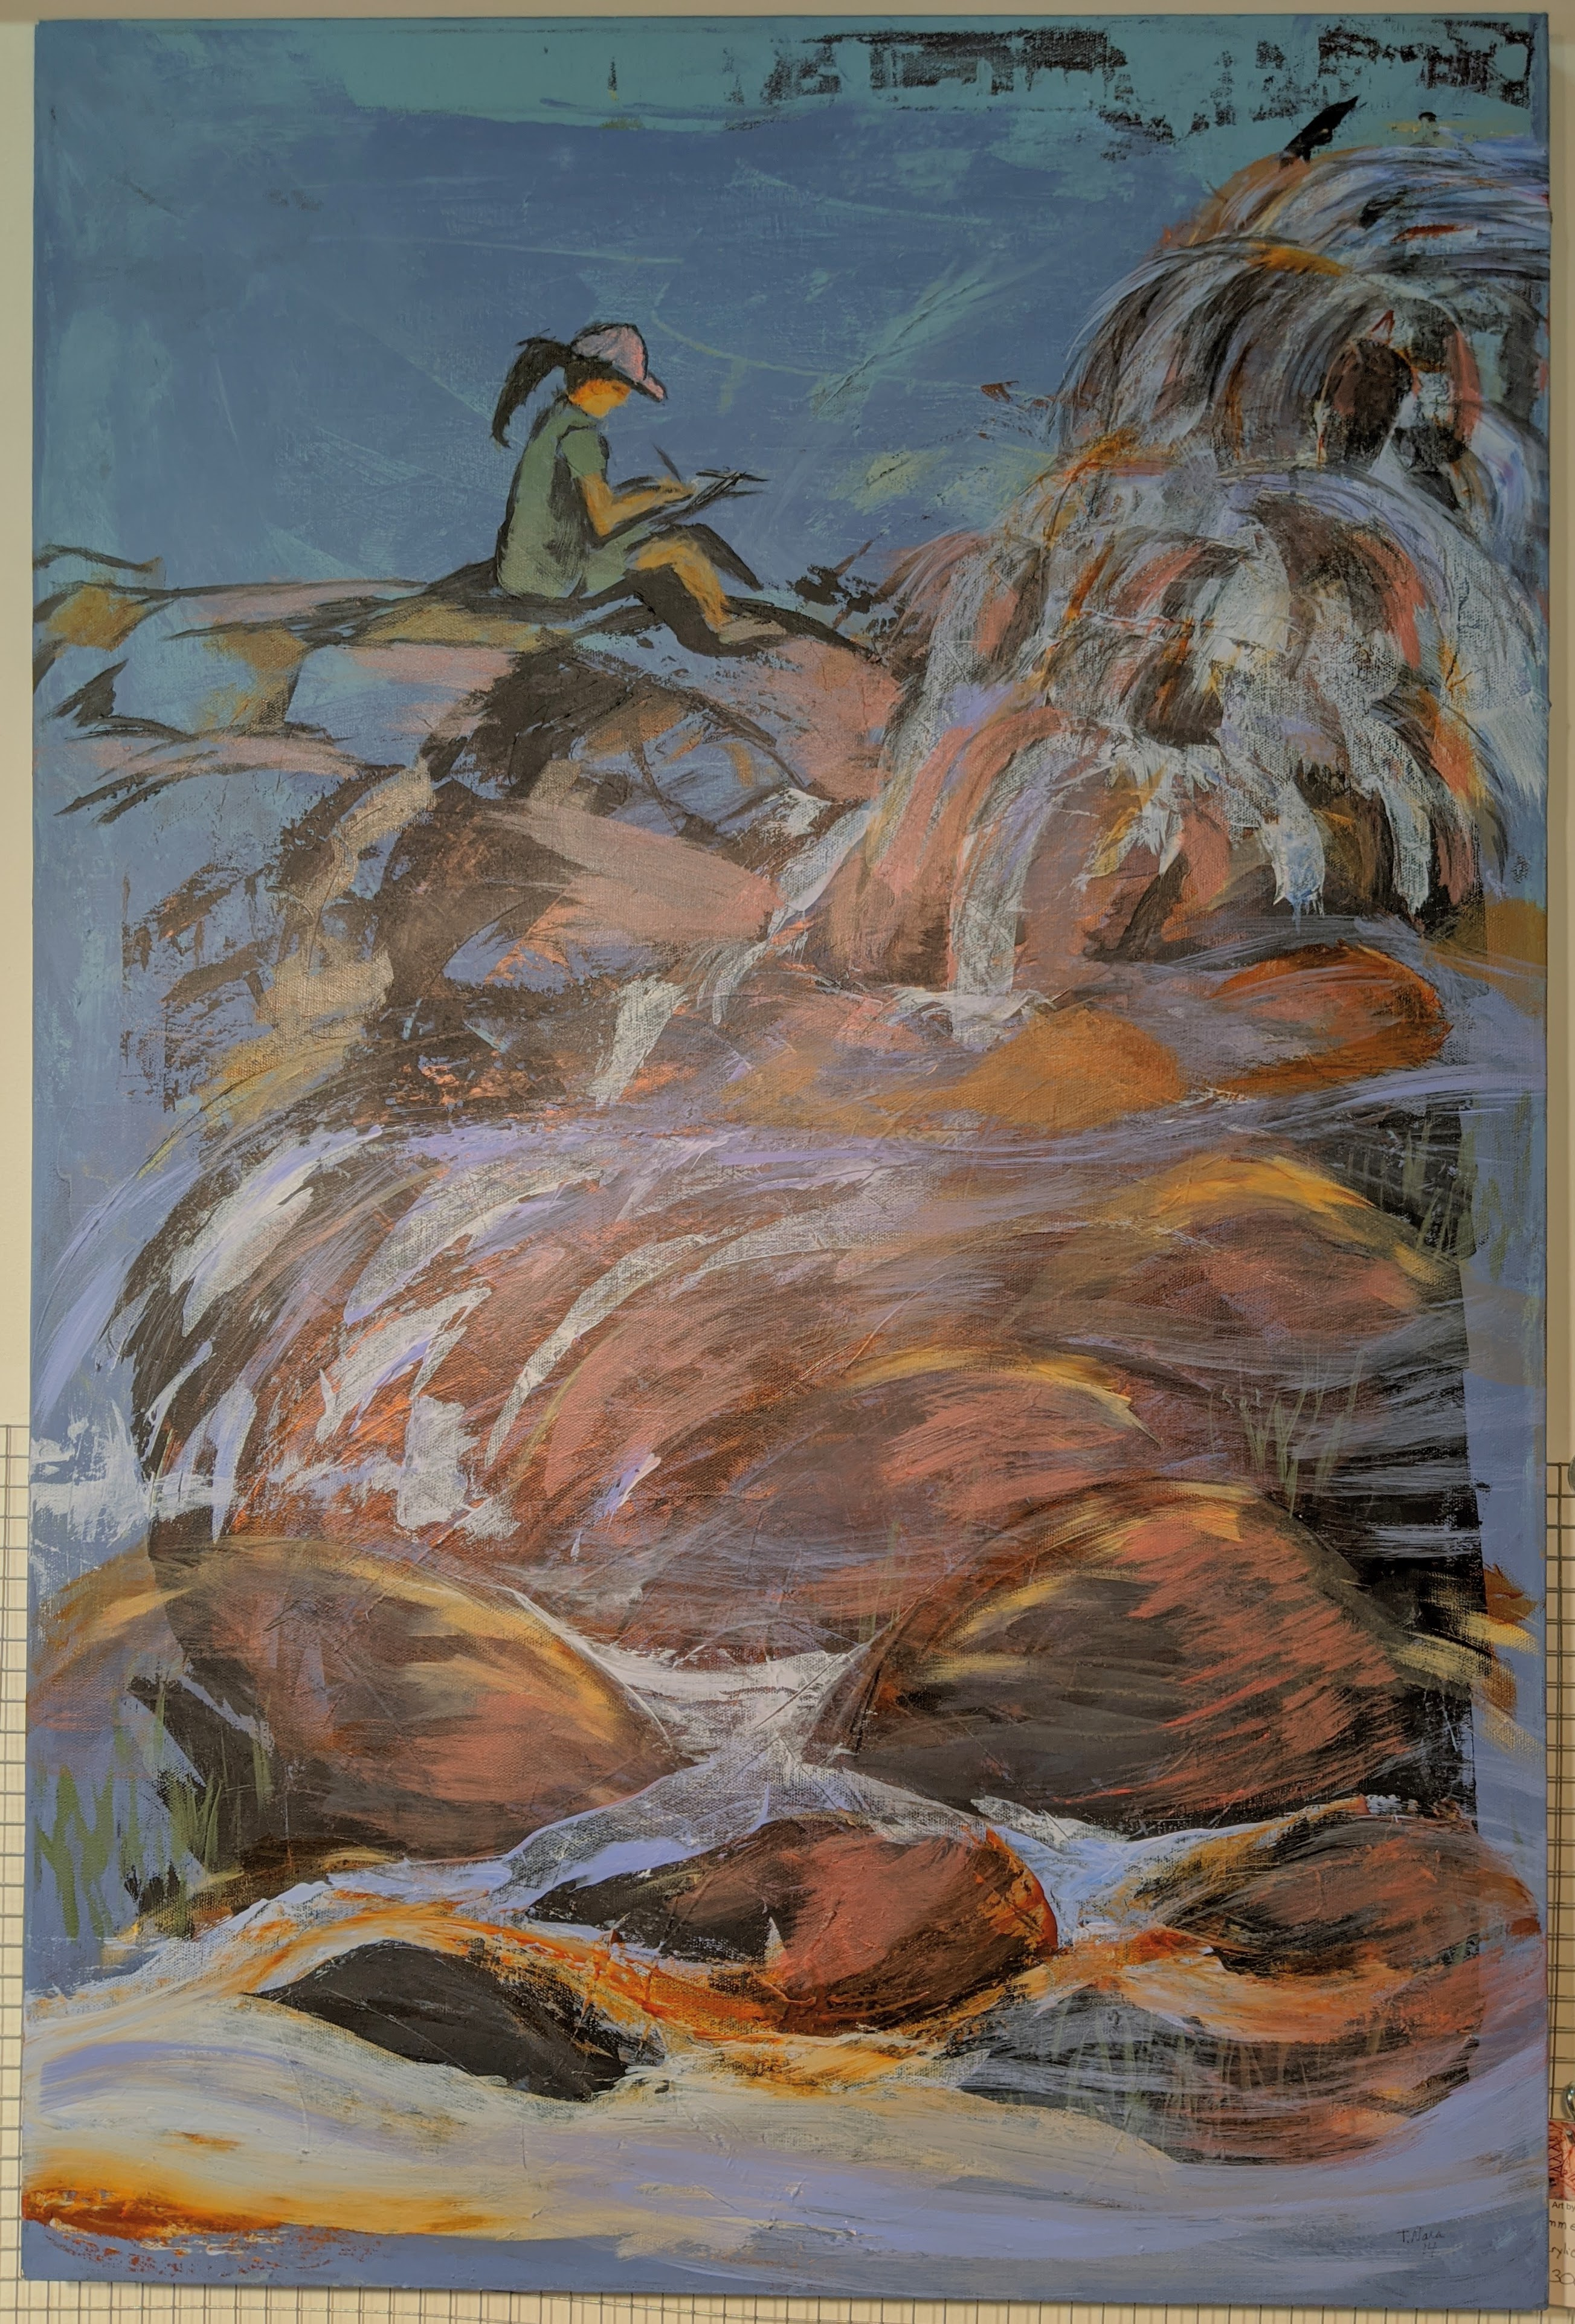 semi-abstract painting of a woman sitting on rocks next to a fast moving river